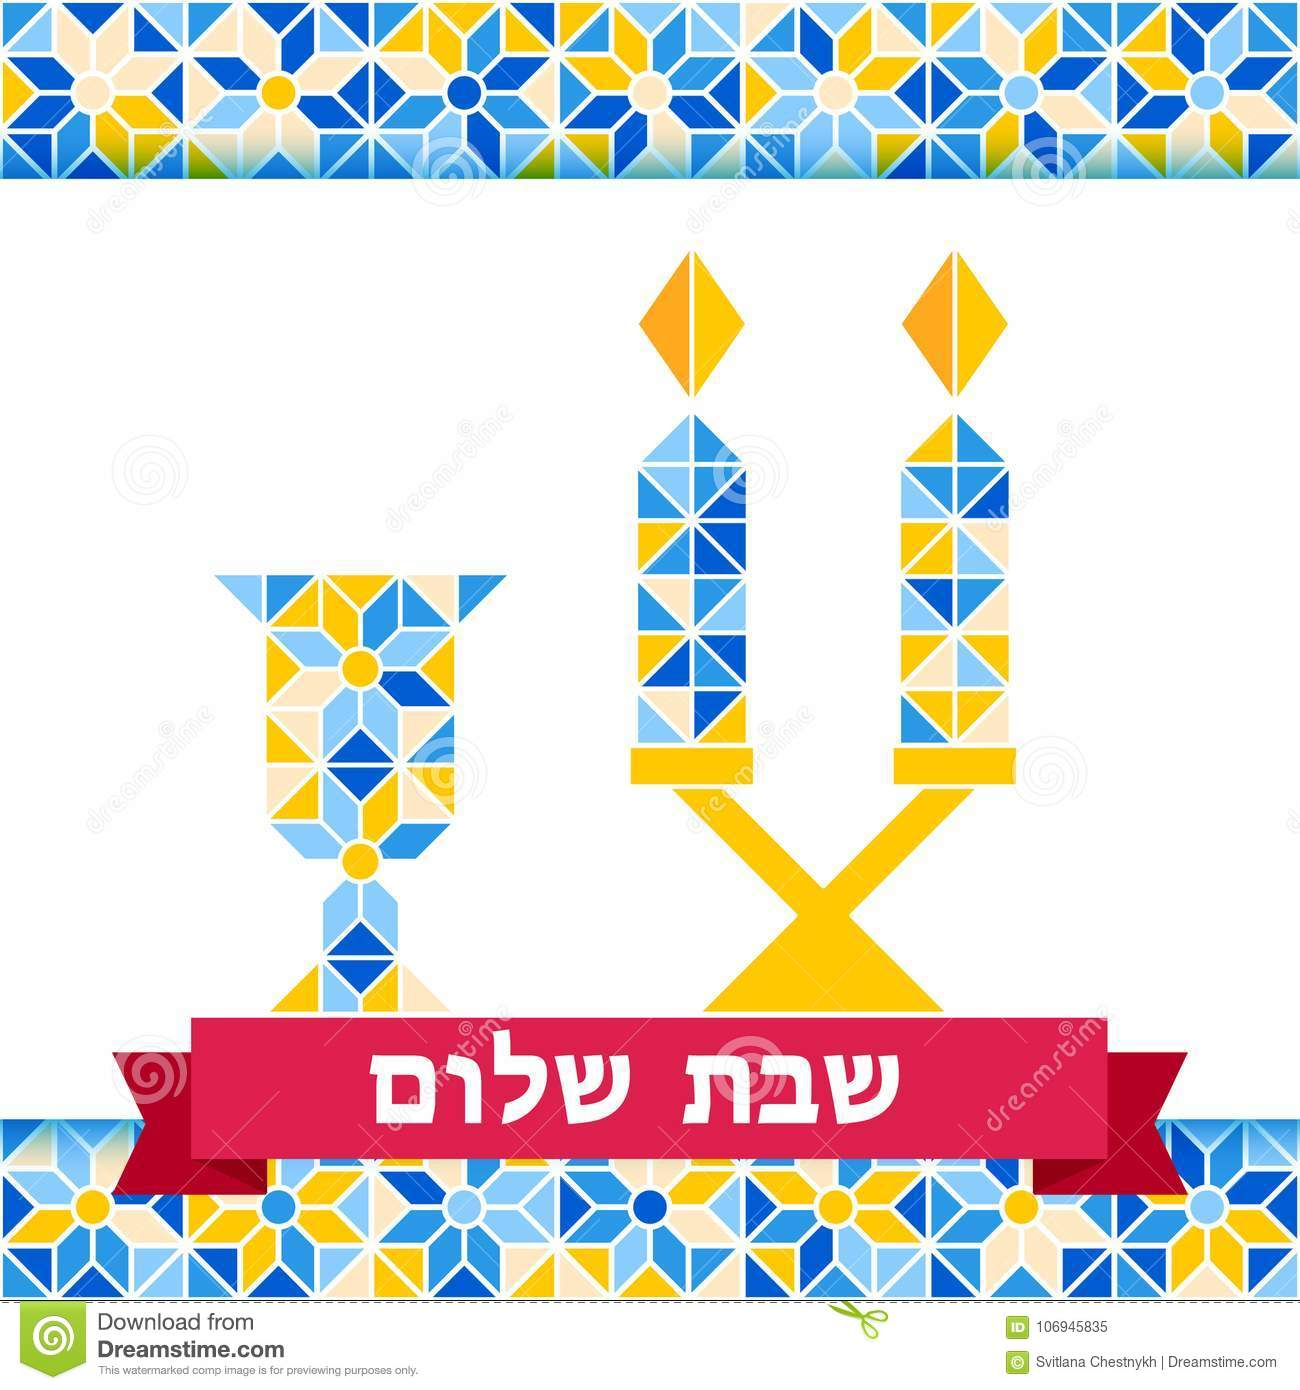 Shabbat shalom greeting card mosaic background stock vector download shabbat shalom greeting card mosaic background stock vector illustration of design letters m4hsunfo